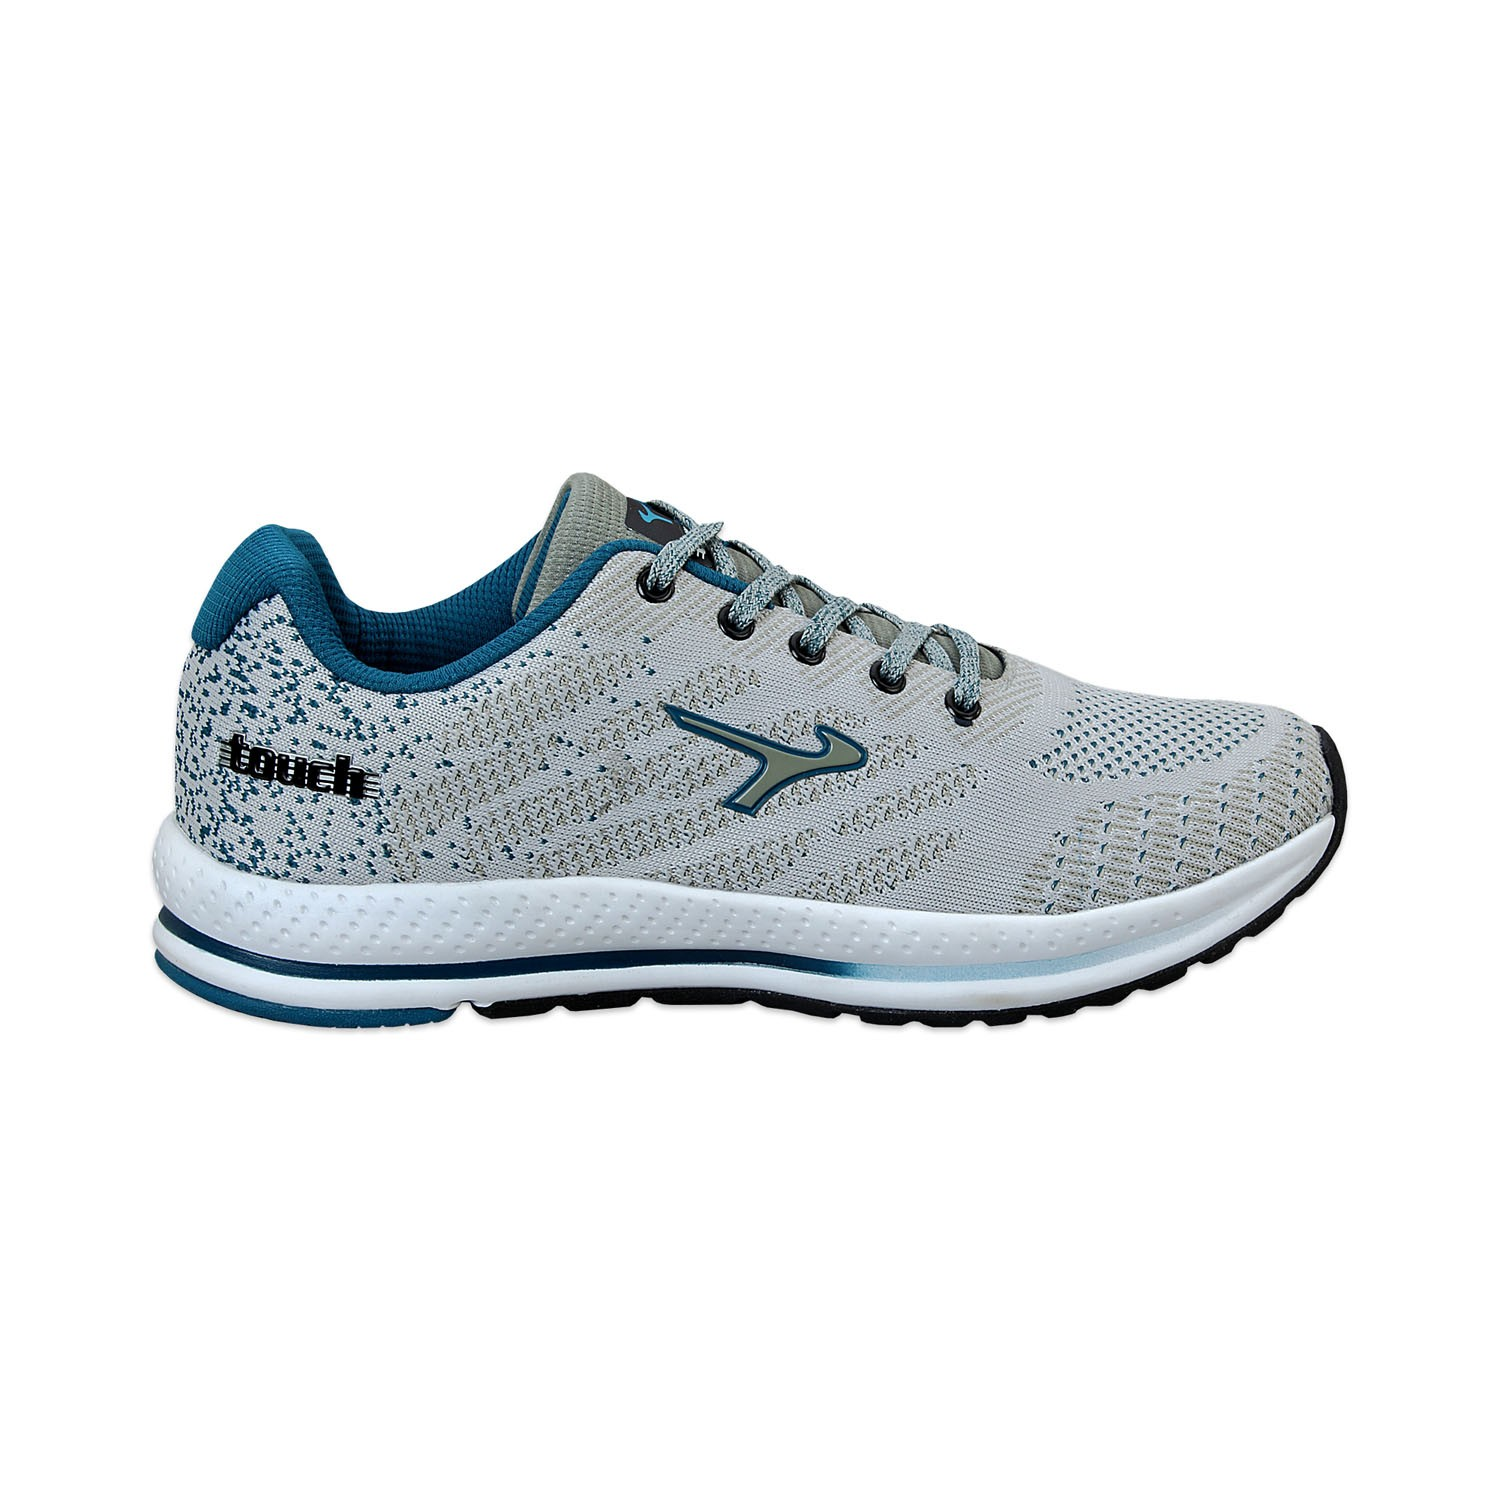 3503ff721d7 Lakhani Footwear: Buy Sports Shoes, Outdoor Shoes, Sandals, Slippers ...